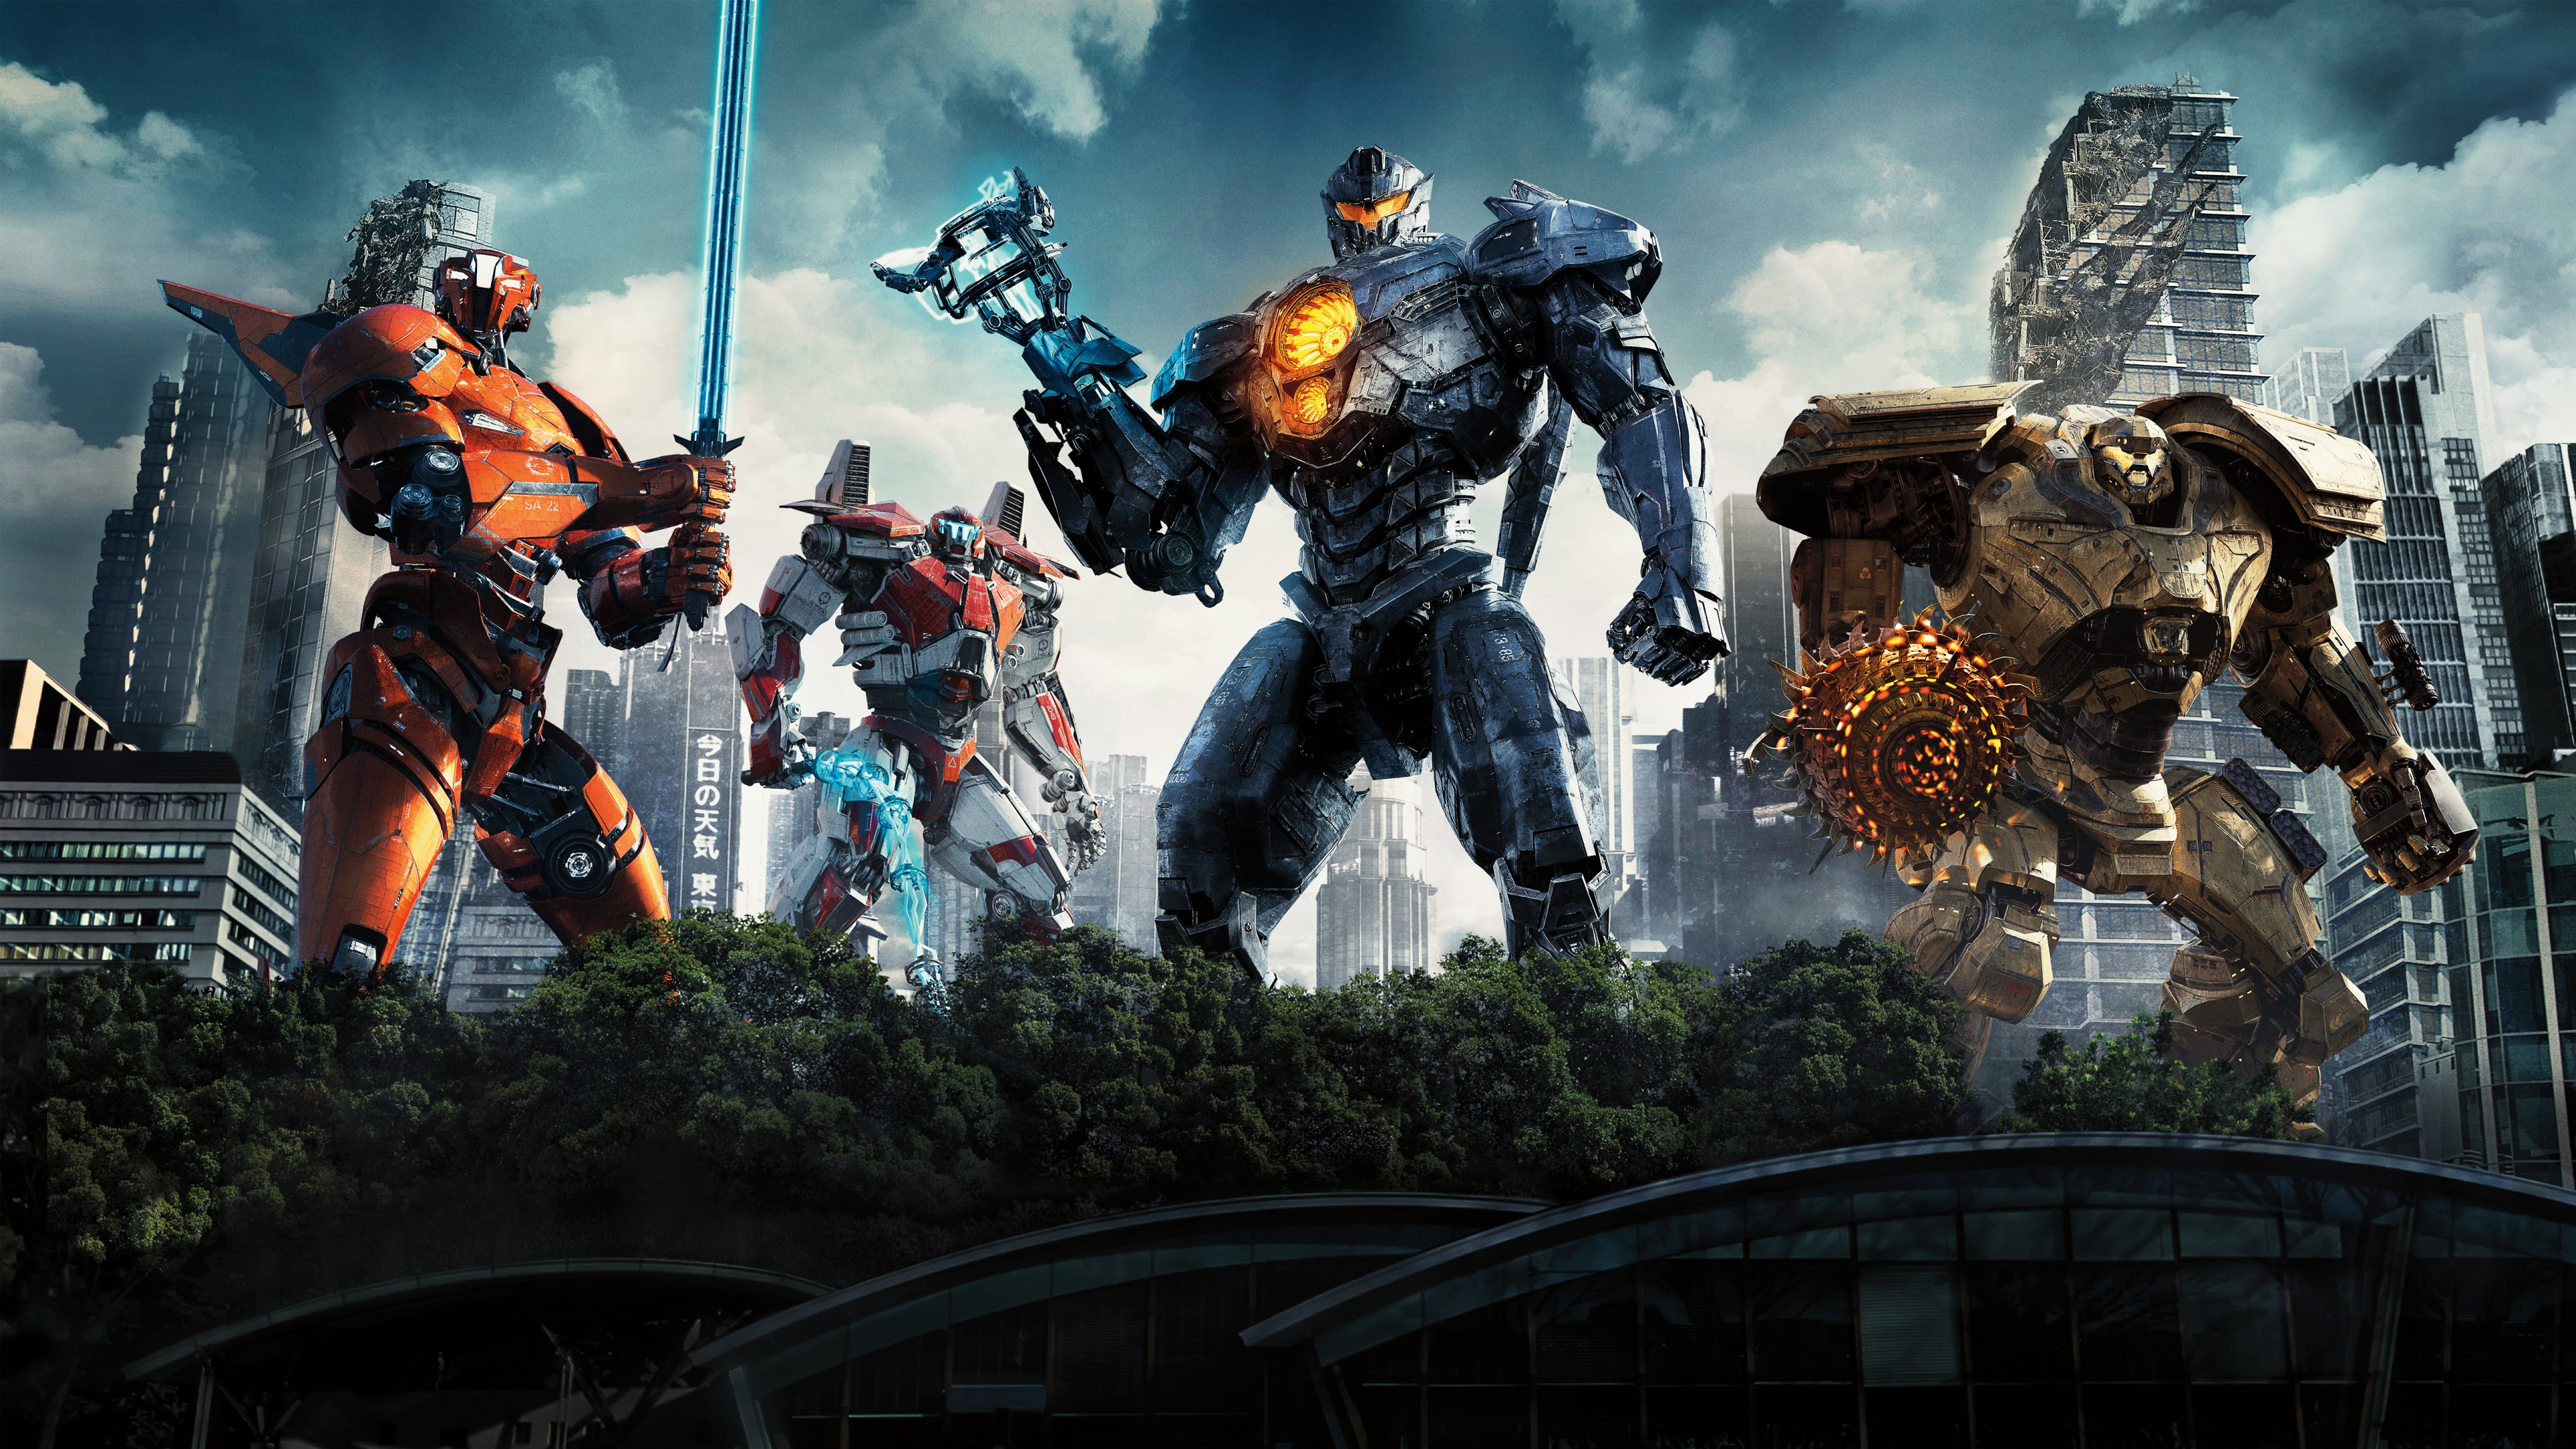 pacific rim uprising 2018 movie 4k wallpaper free download